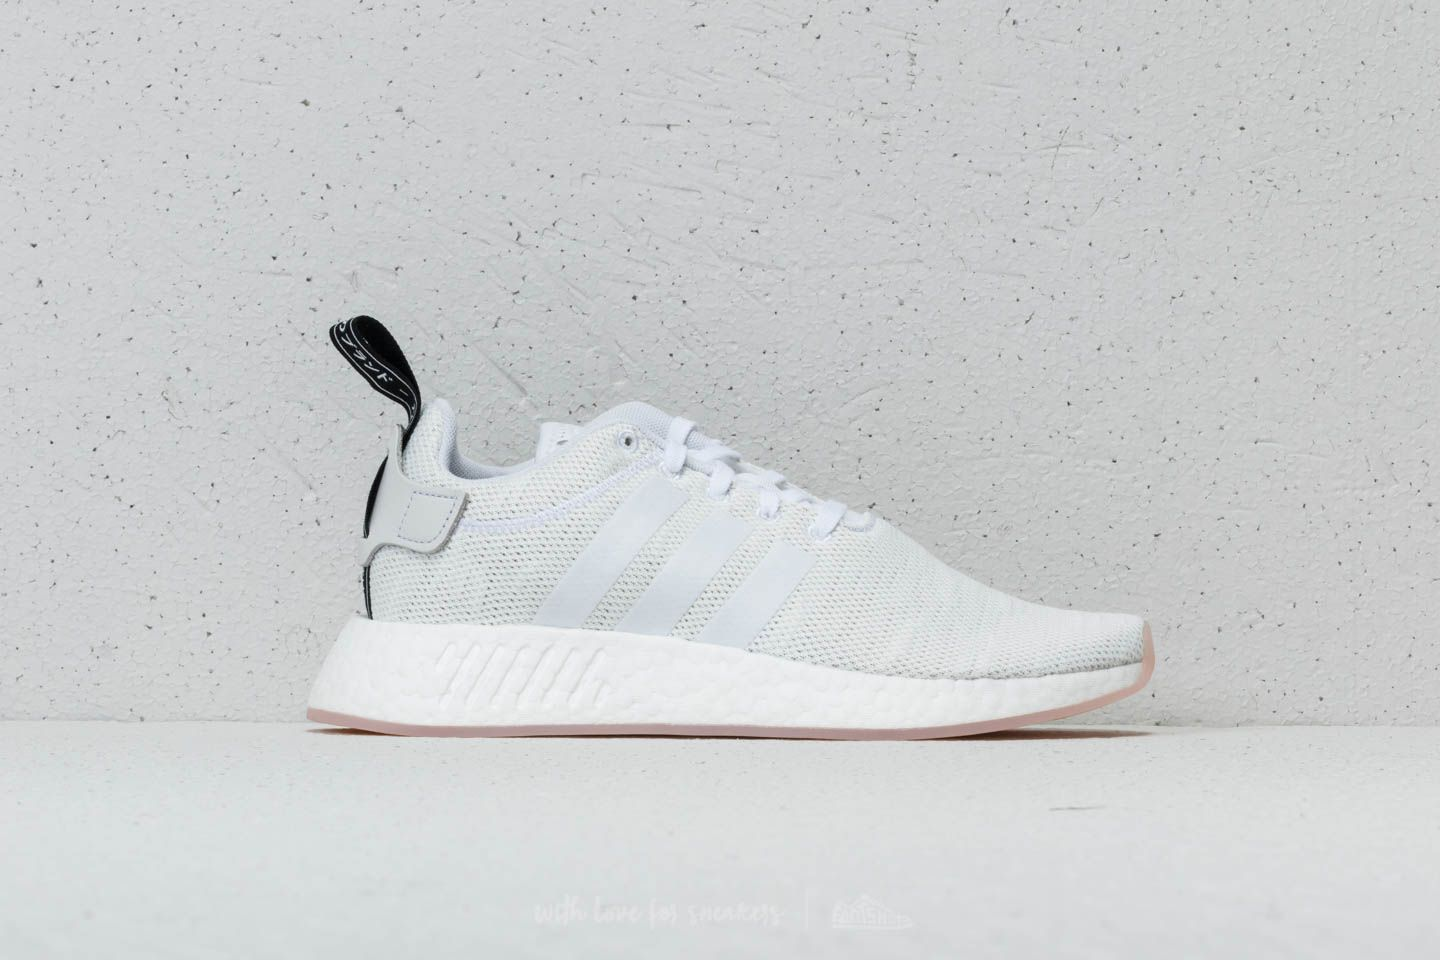 new product fd9fa e87bb adidas NMD_R2 W Crystal White/ Ftw White/ Core Black | Footshop